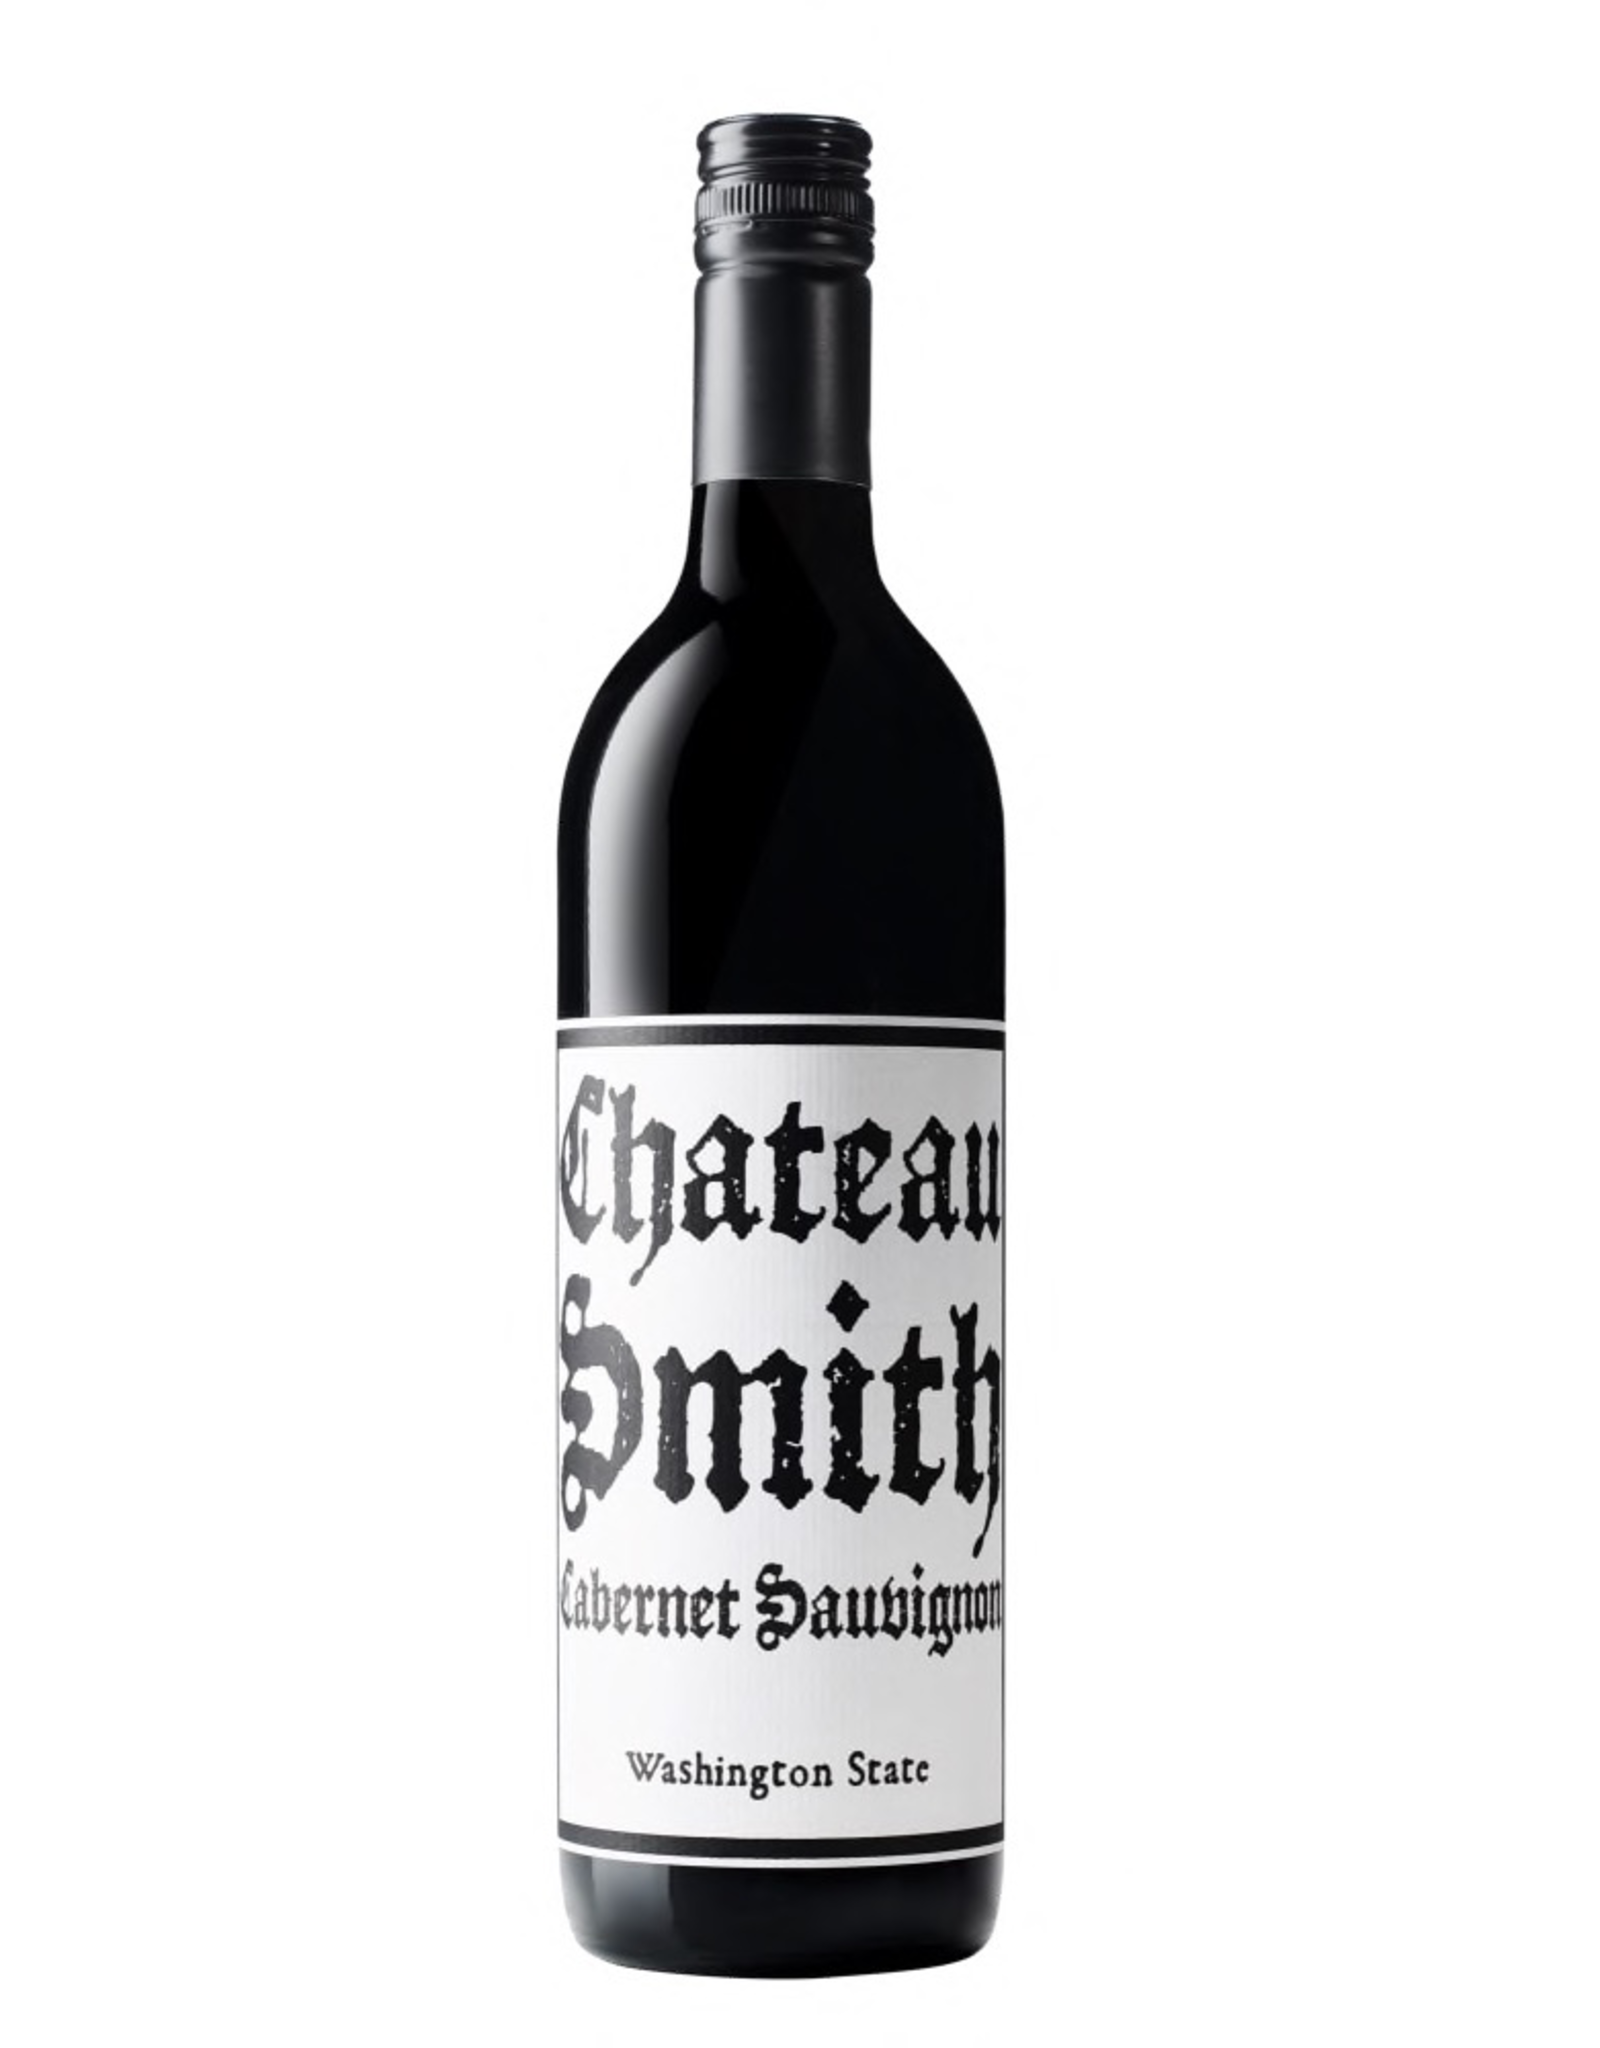 Red Wine 2017, Chateau Smith, Cabernet Sauvignon, Multi-regional Blend, Mattawa, Washington, USA, 14% Alc, CTnr